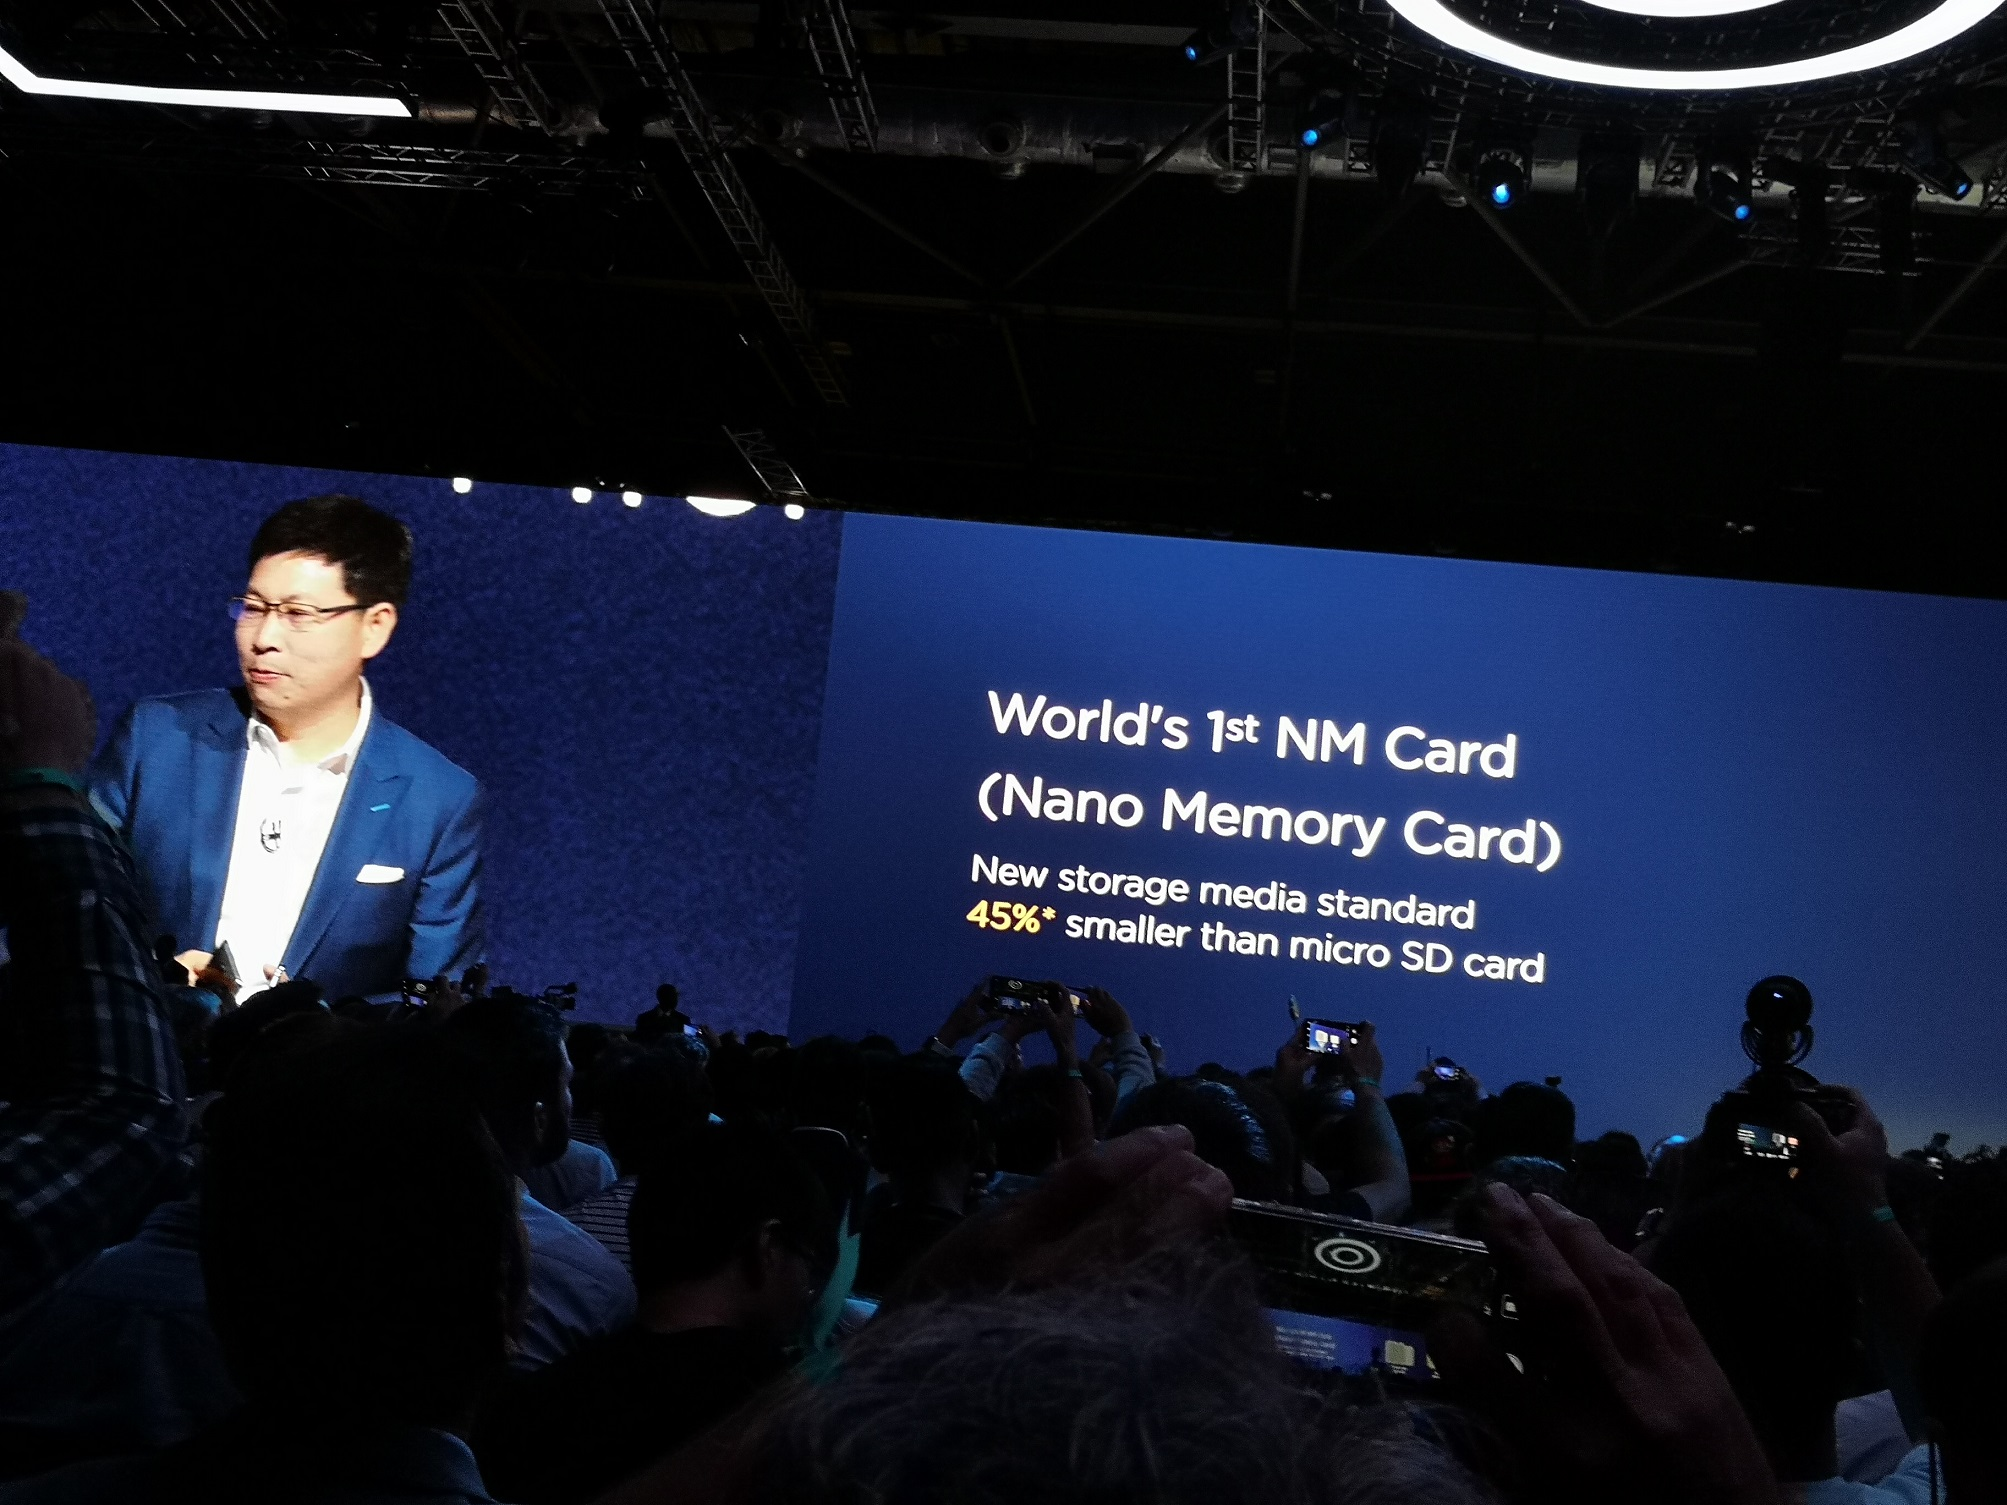 Huawei's Nano Memory Cards: The new standard in phone storage?